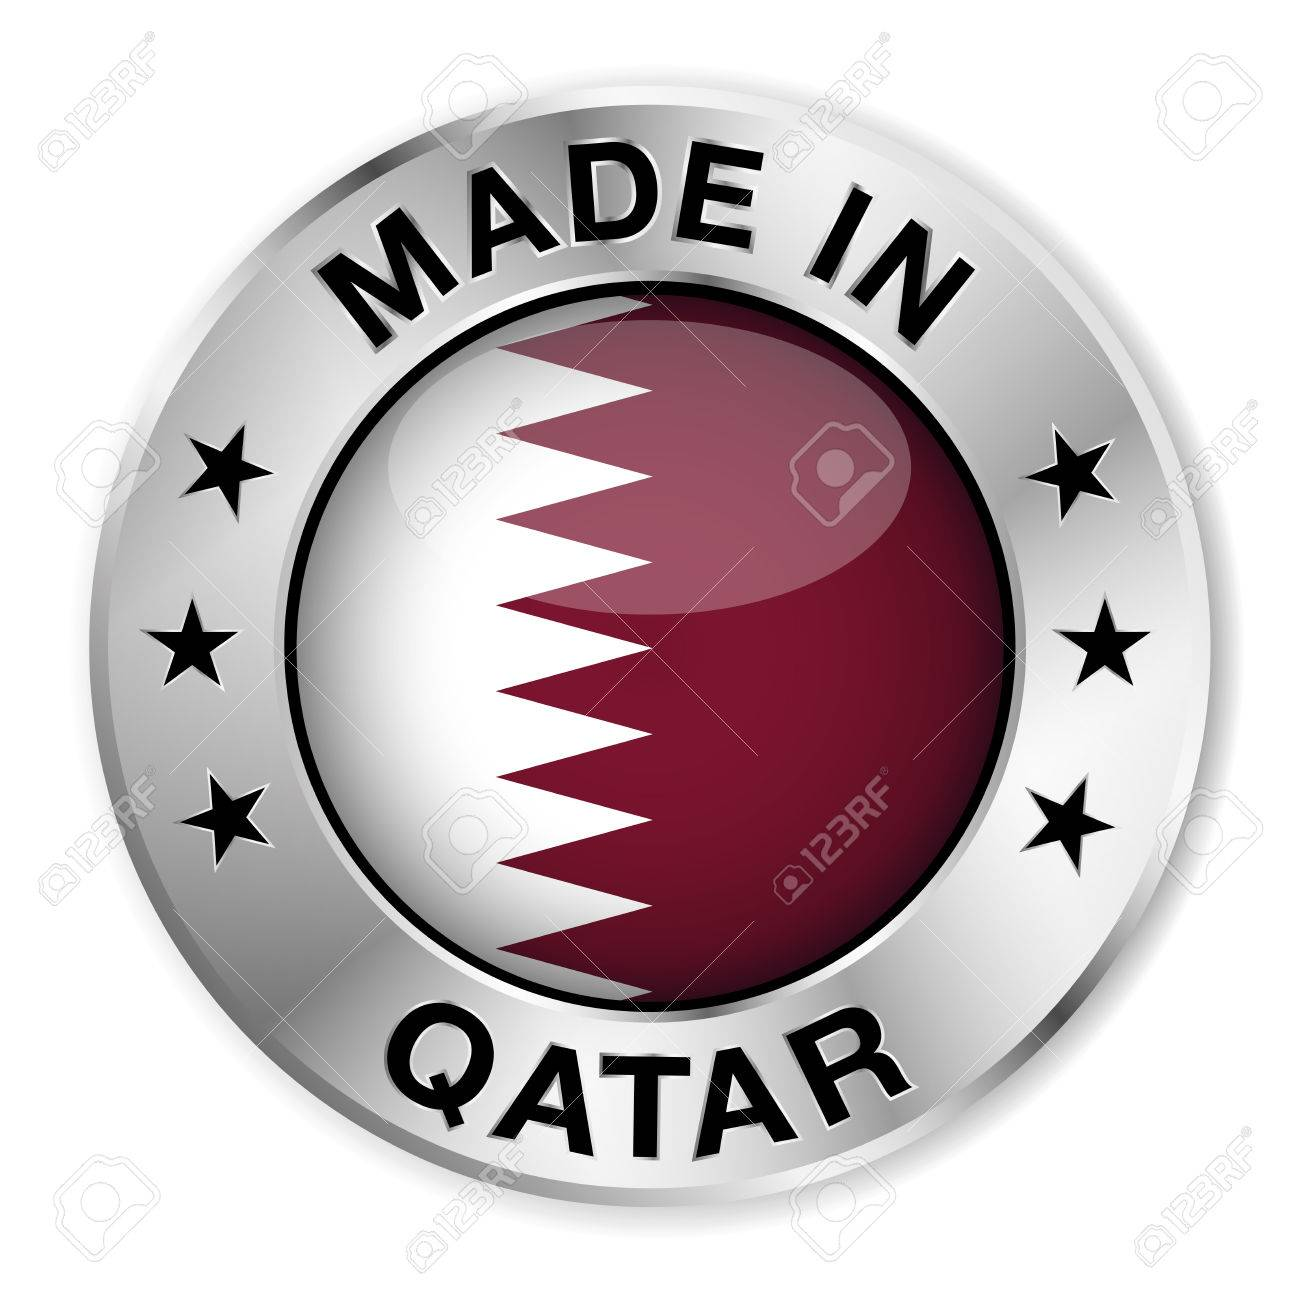 Made in Qatar silver badge and icon with central glossy Qatari